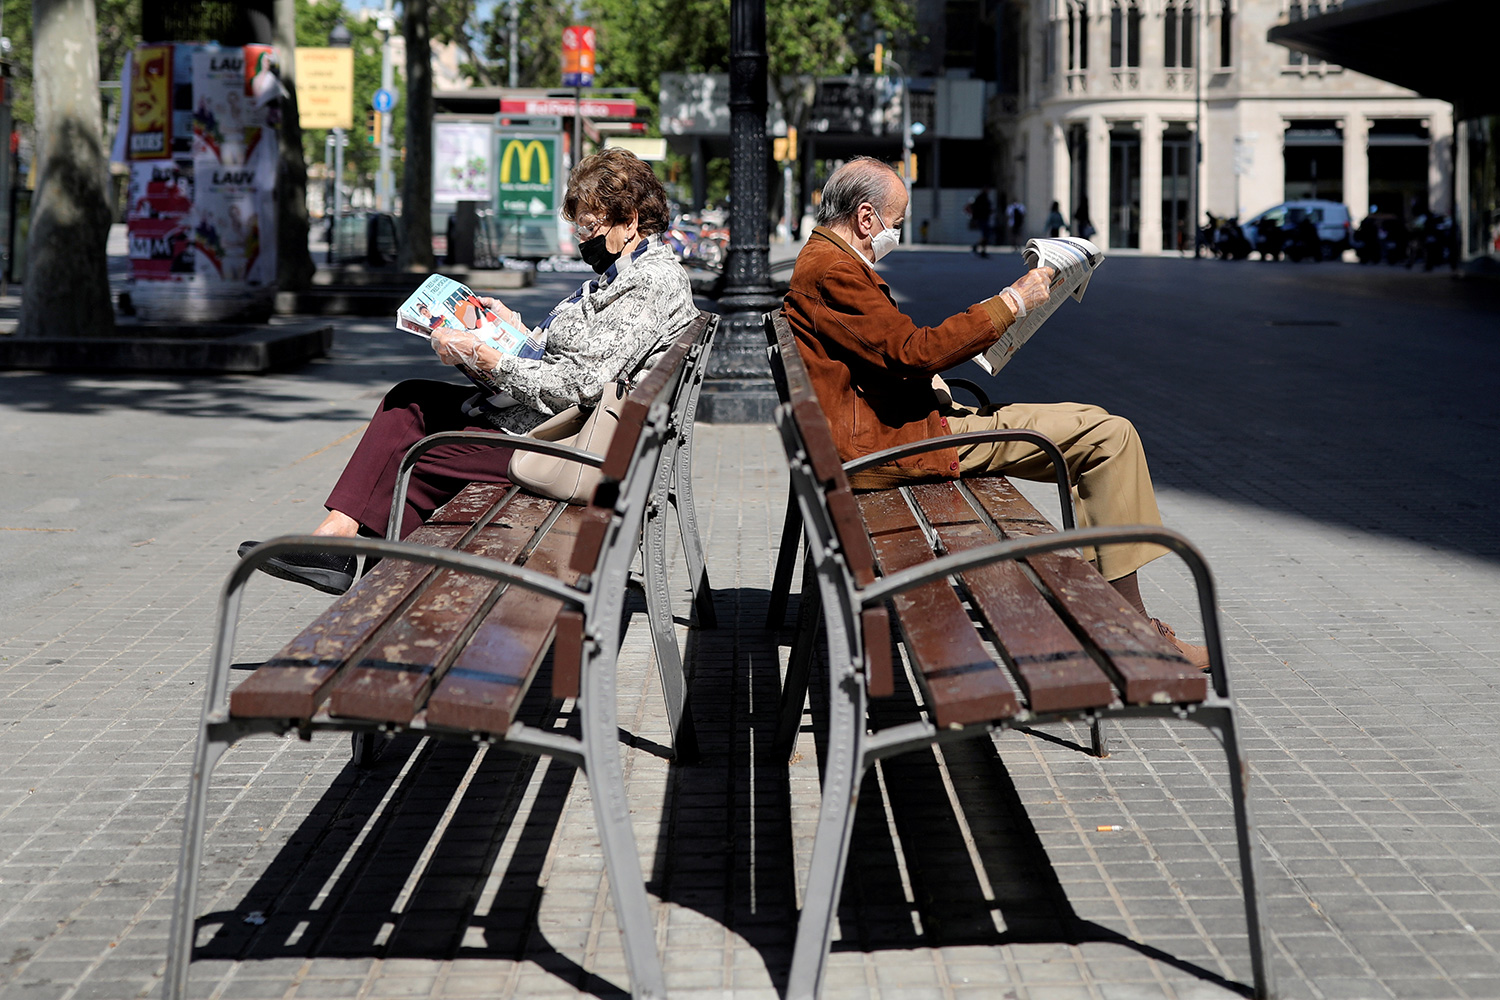 The picture shows two people on benches facing in opposite directions.